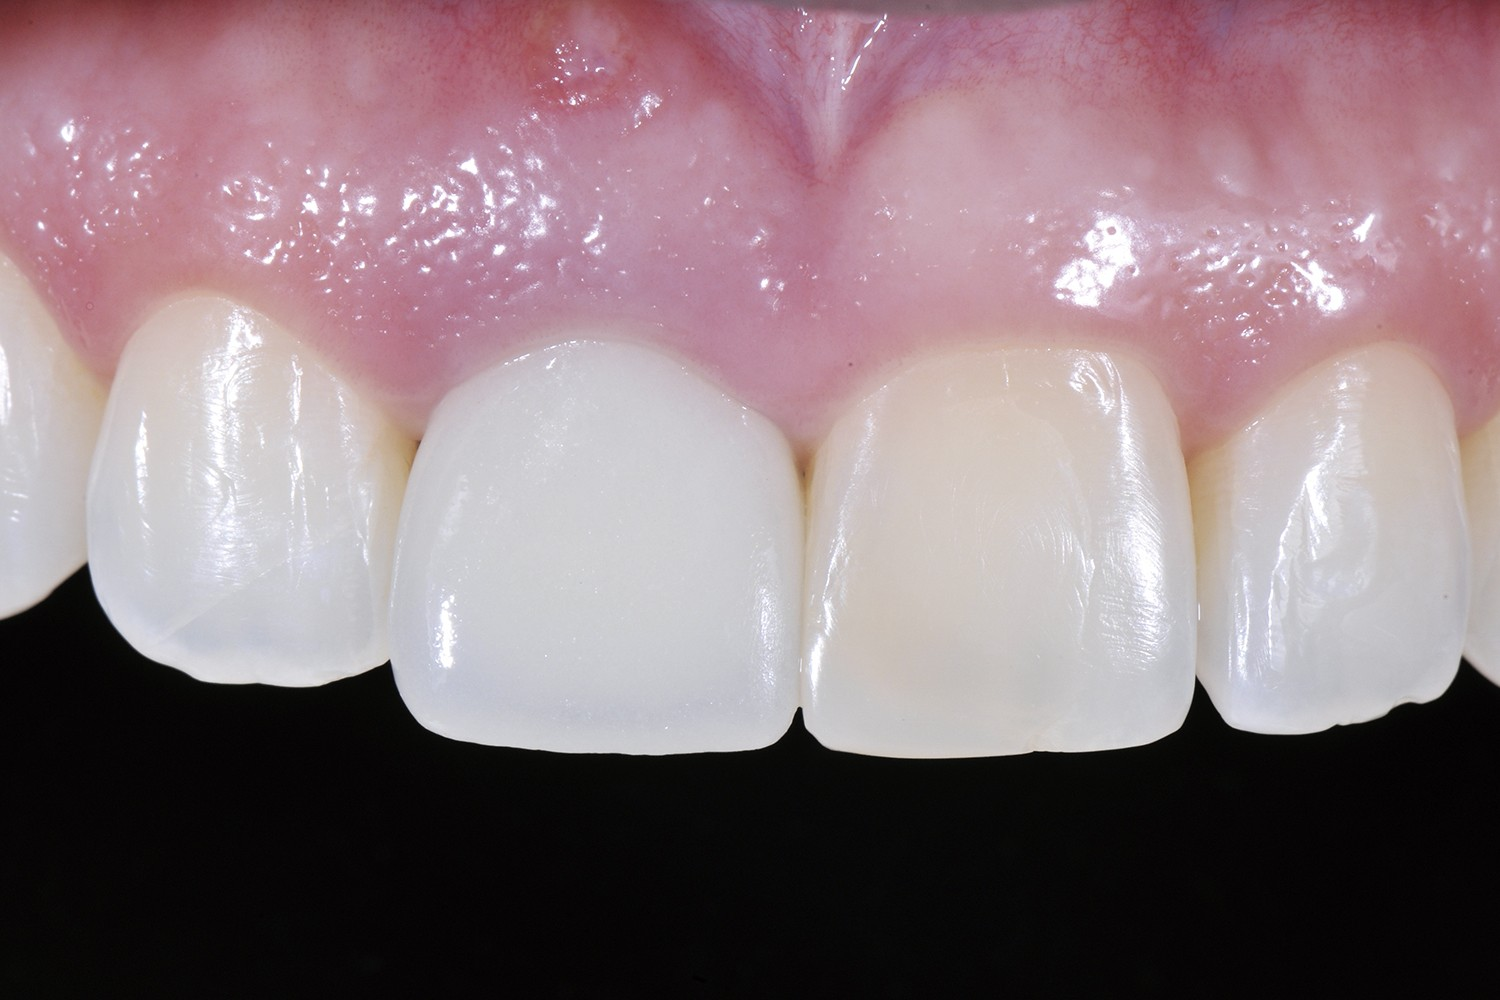 The aesthetic challenge of implant- and tooth-supported anterior rehabilitations